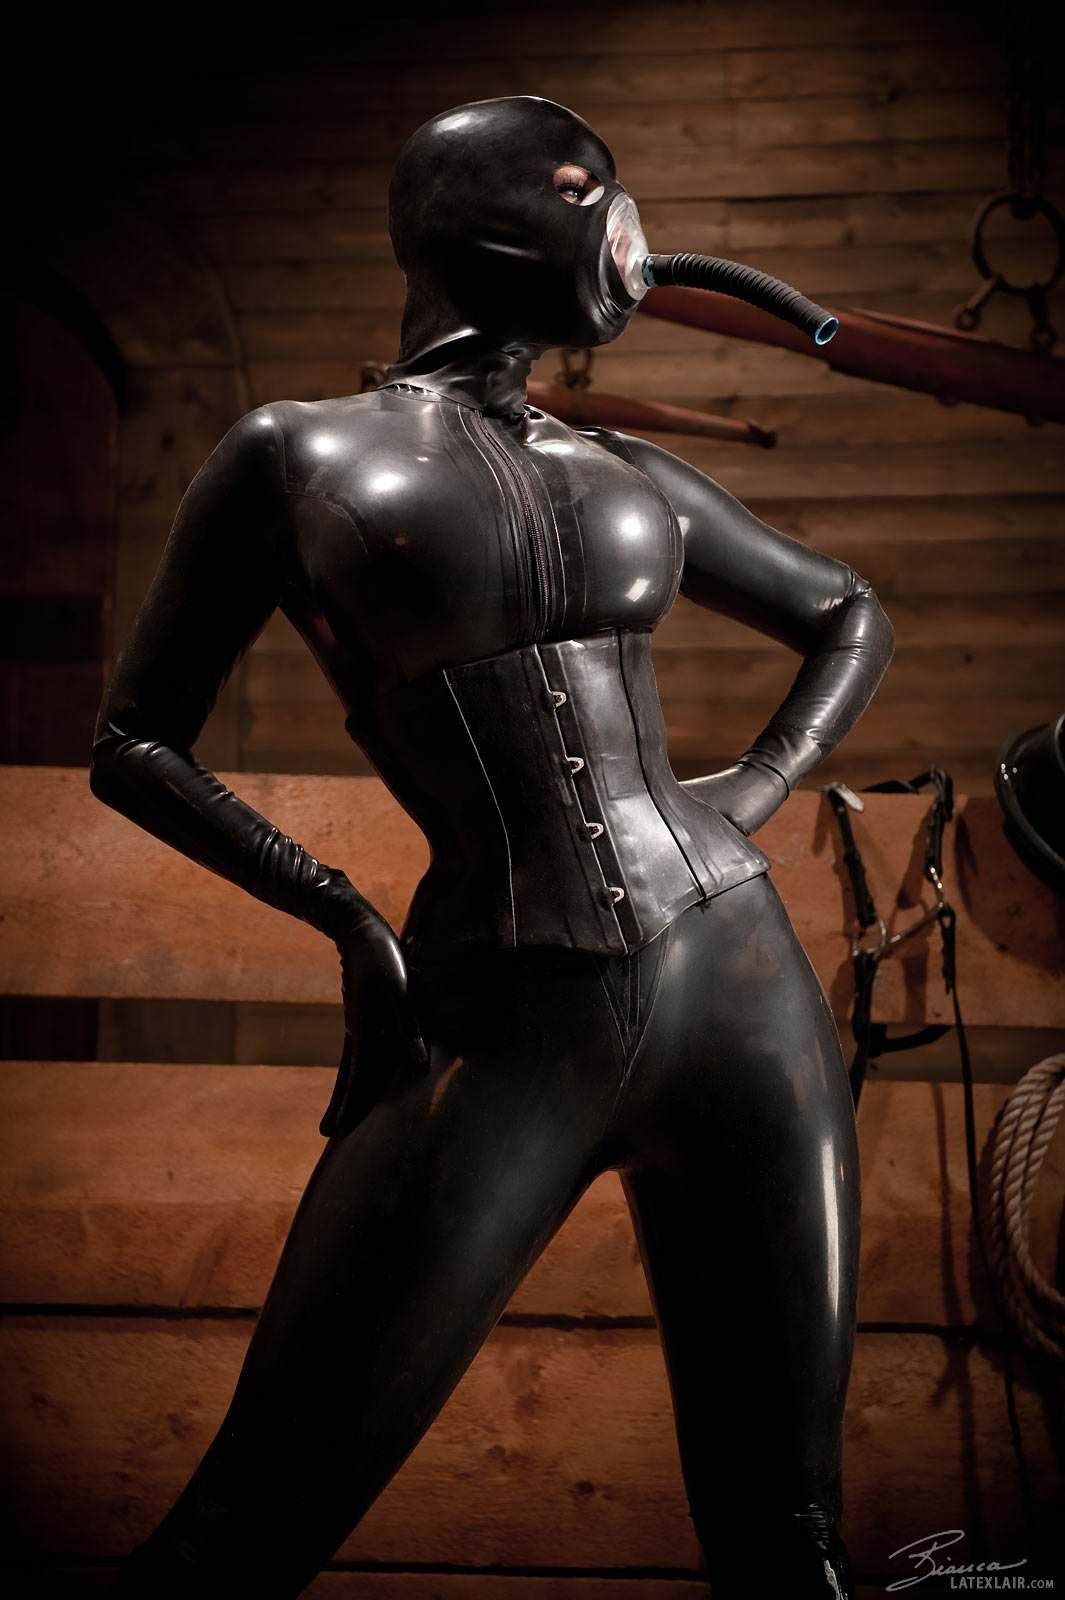 Bianca Beauchamp in black rubber and breathing mask